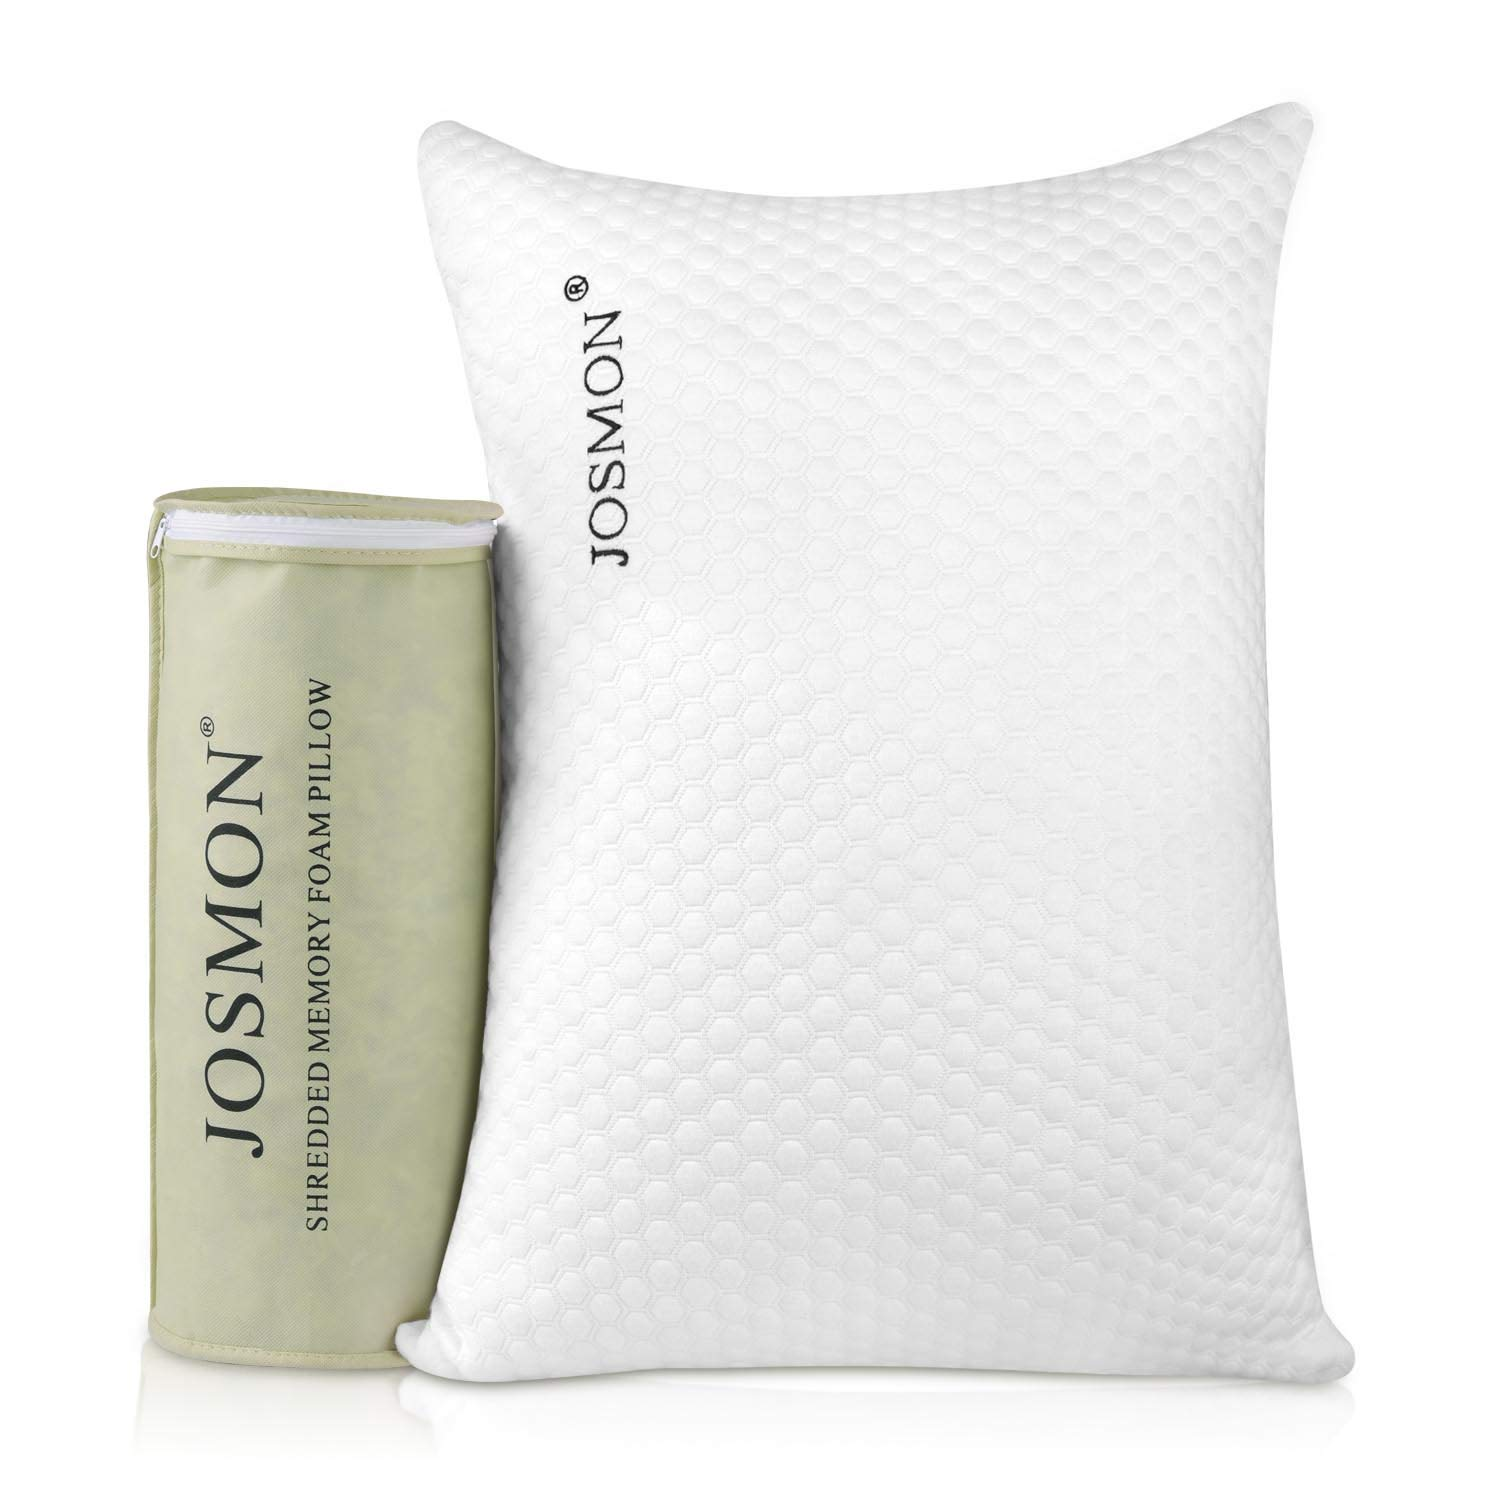 Josmon Shredded Memory Foam Pillow